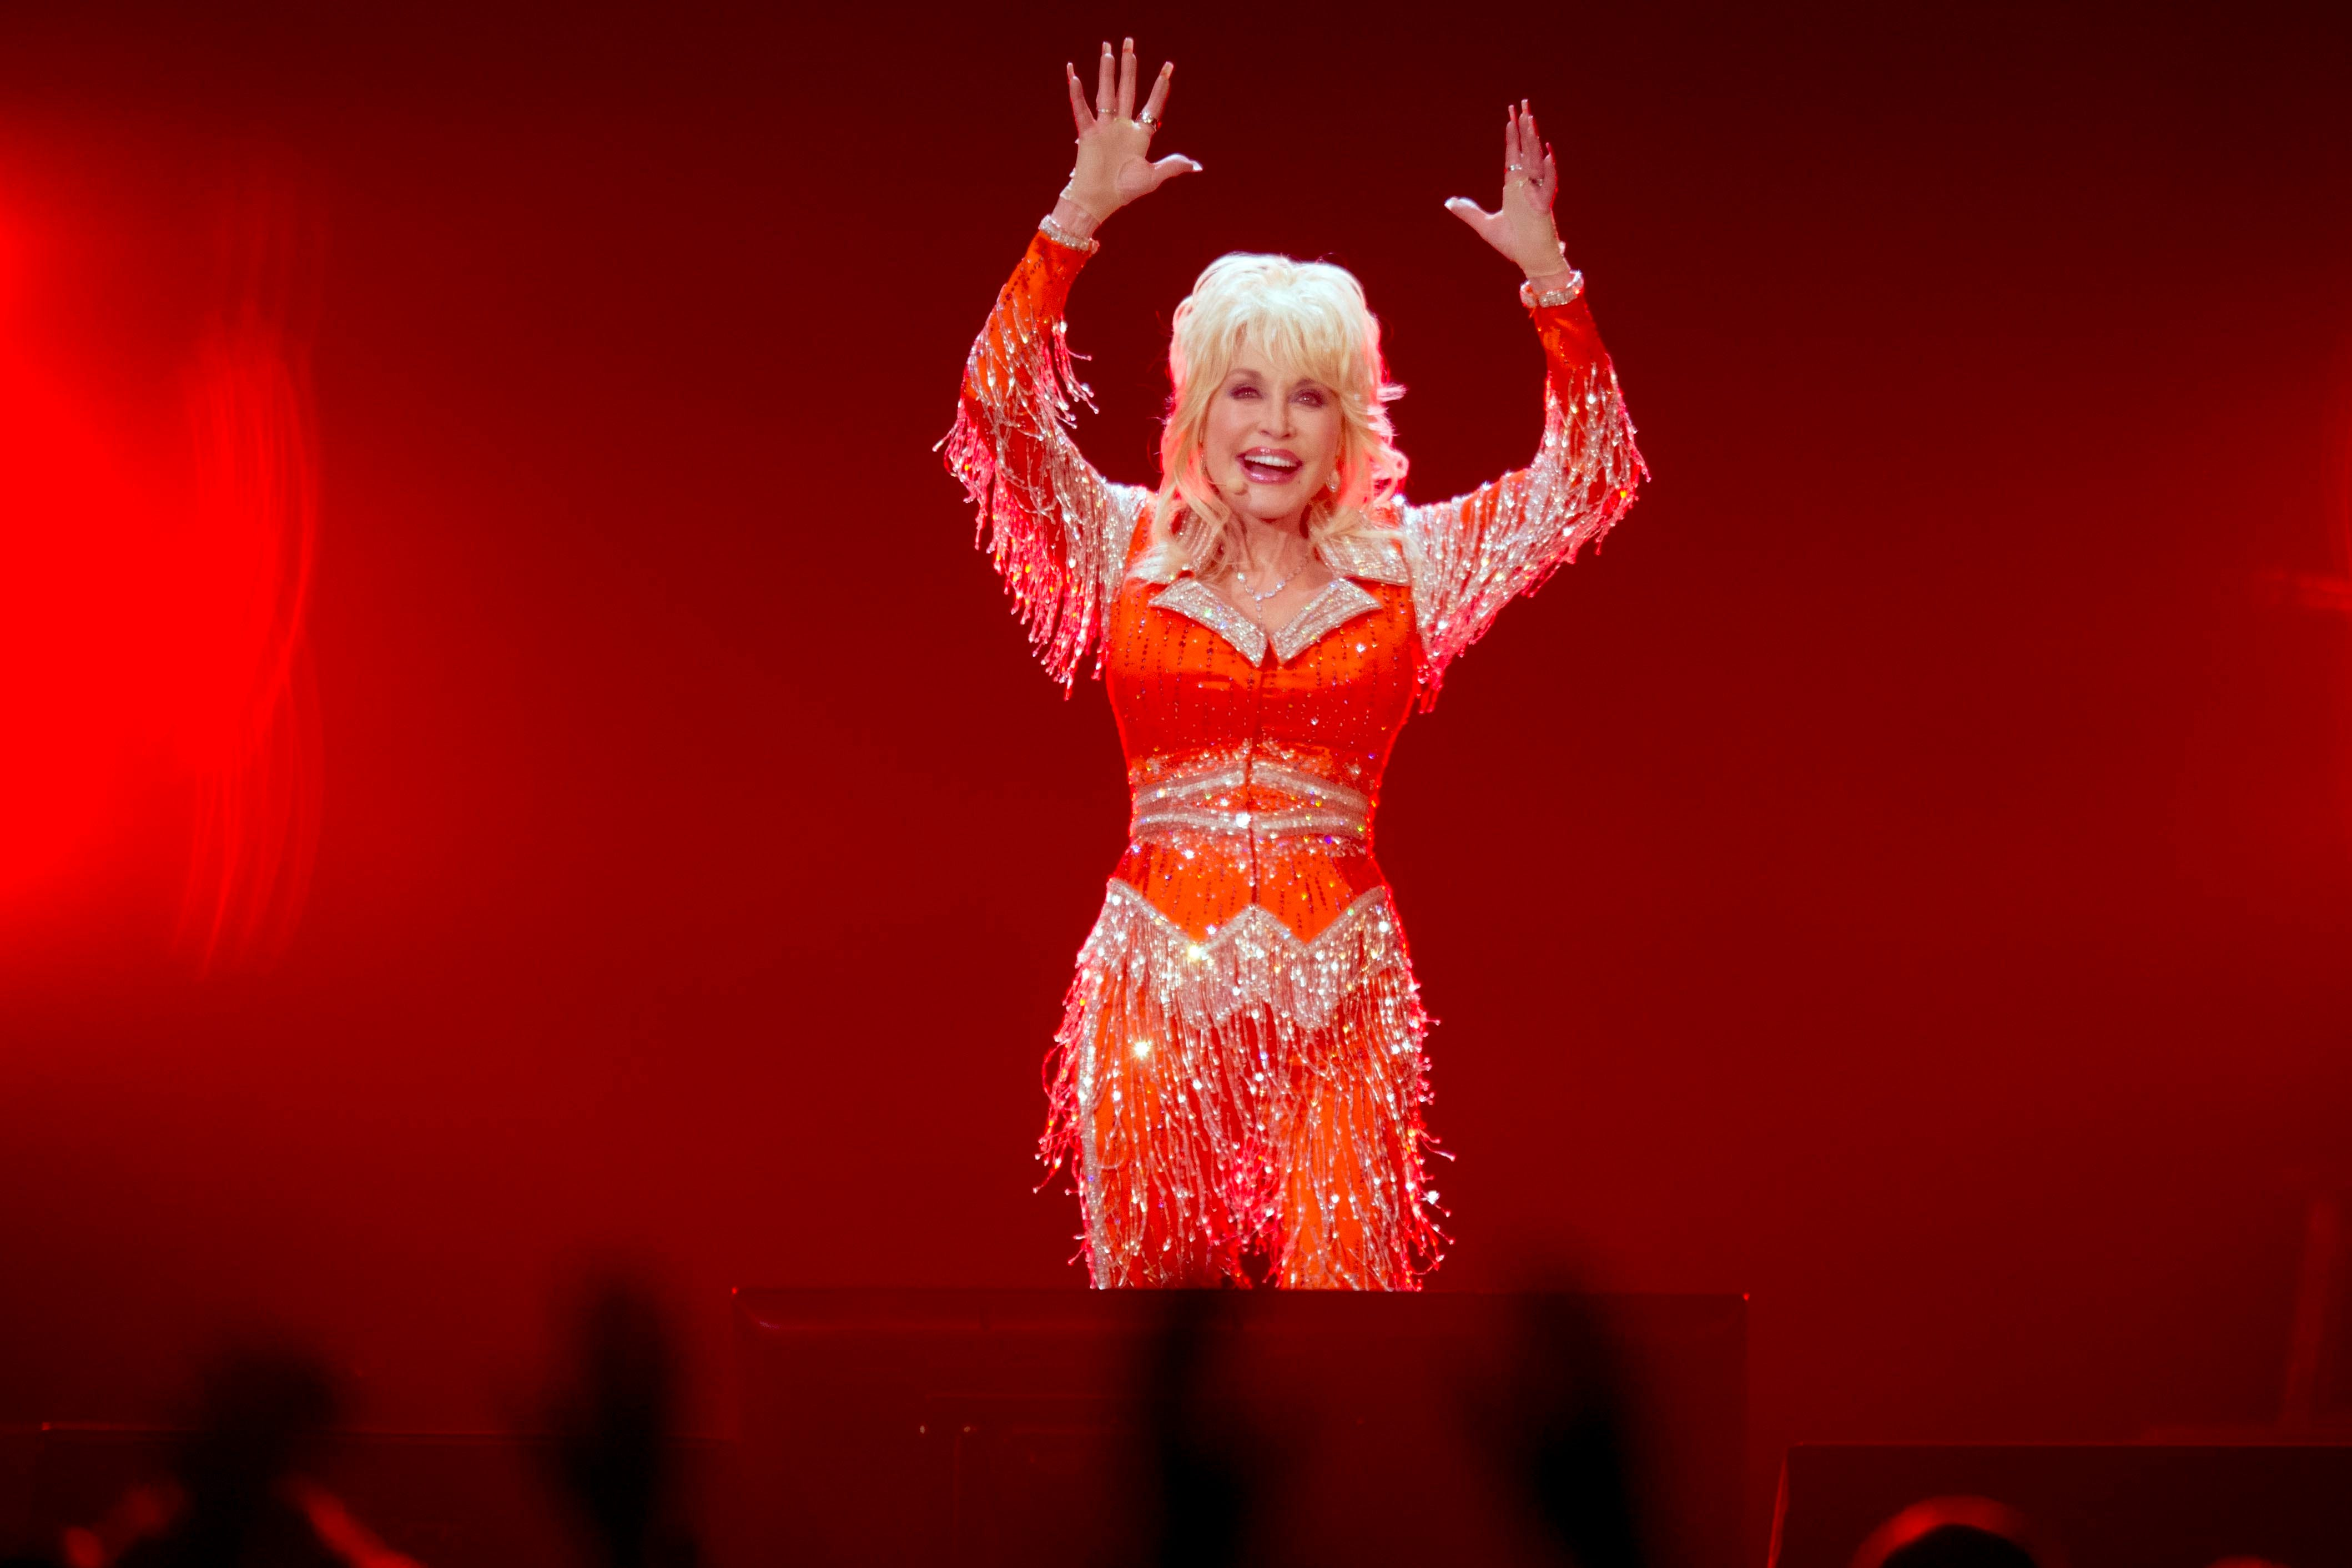 Dolly Parton performs a benefit show for her Imagination Library and the Robert F. Thomas Foundation at Thompson-Boling Arena in Knoxville, Tenn., on May 28, 2014.